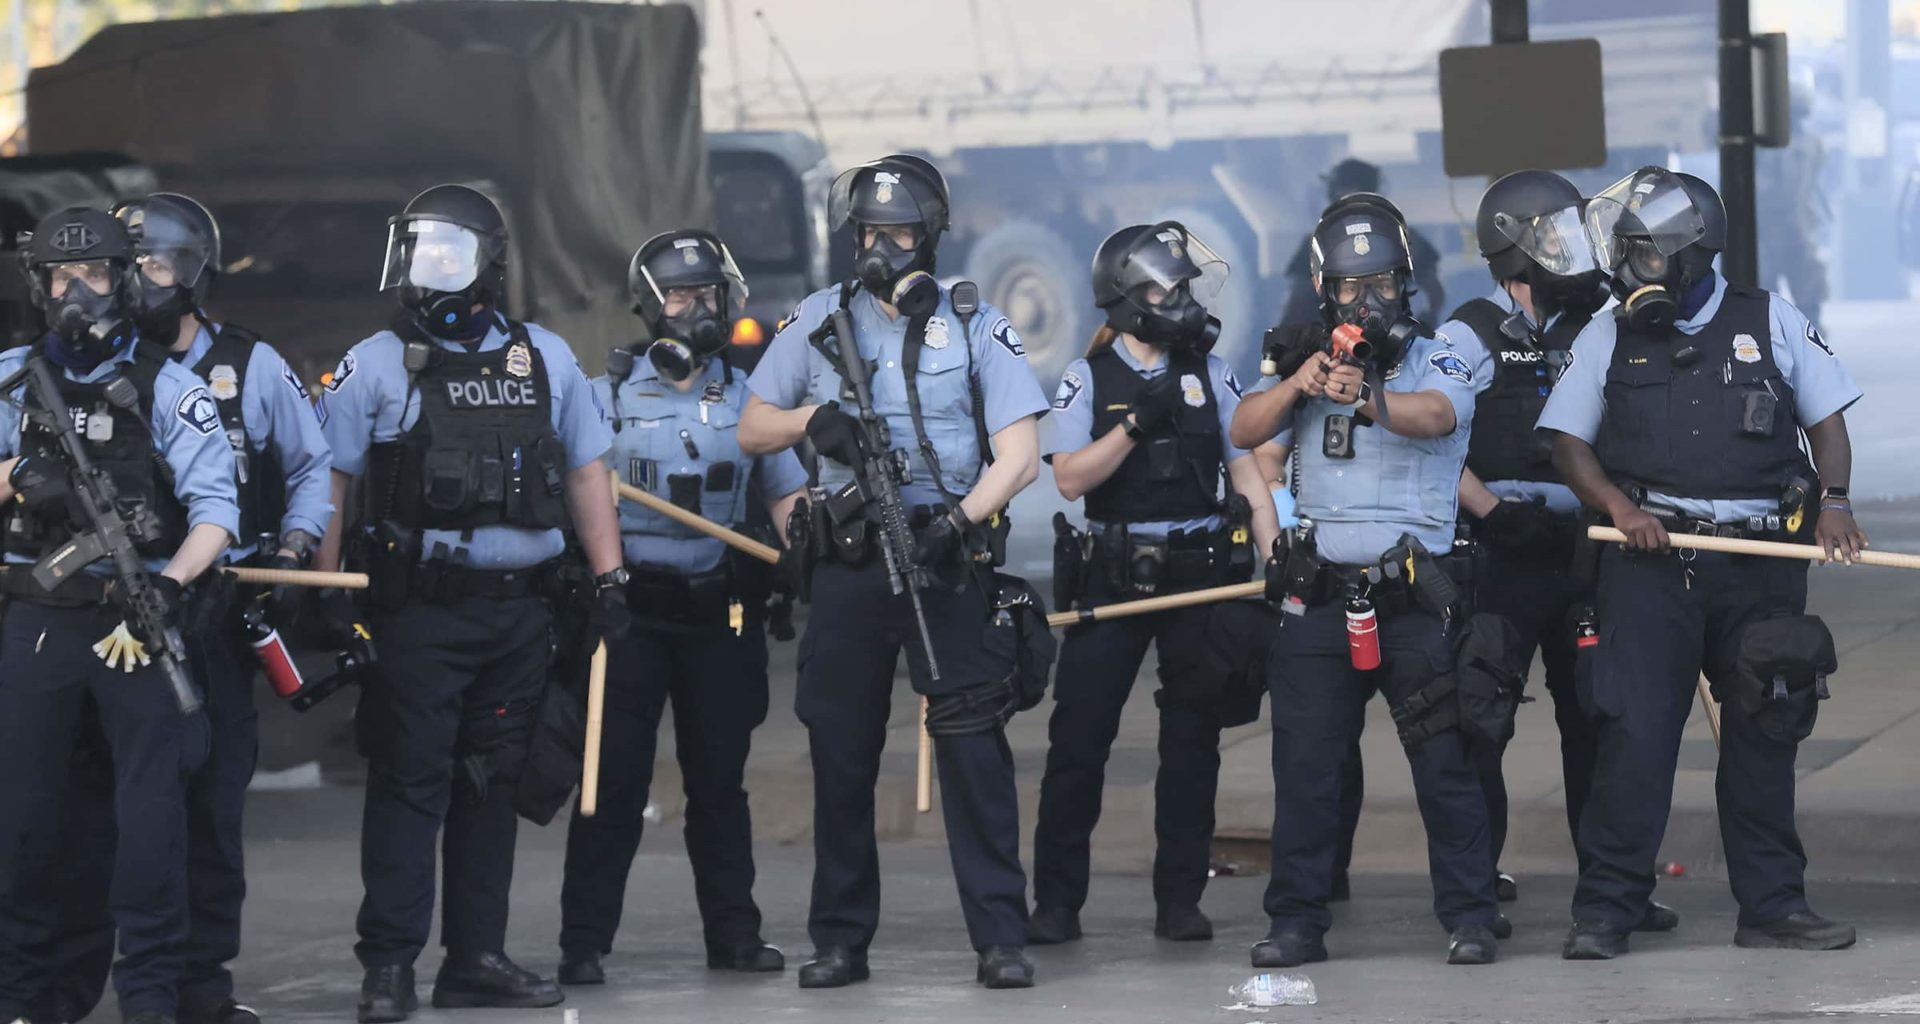 If I Die In Police Custody, Get Angry And Change The System